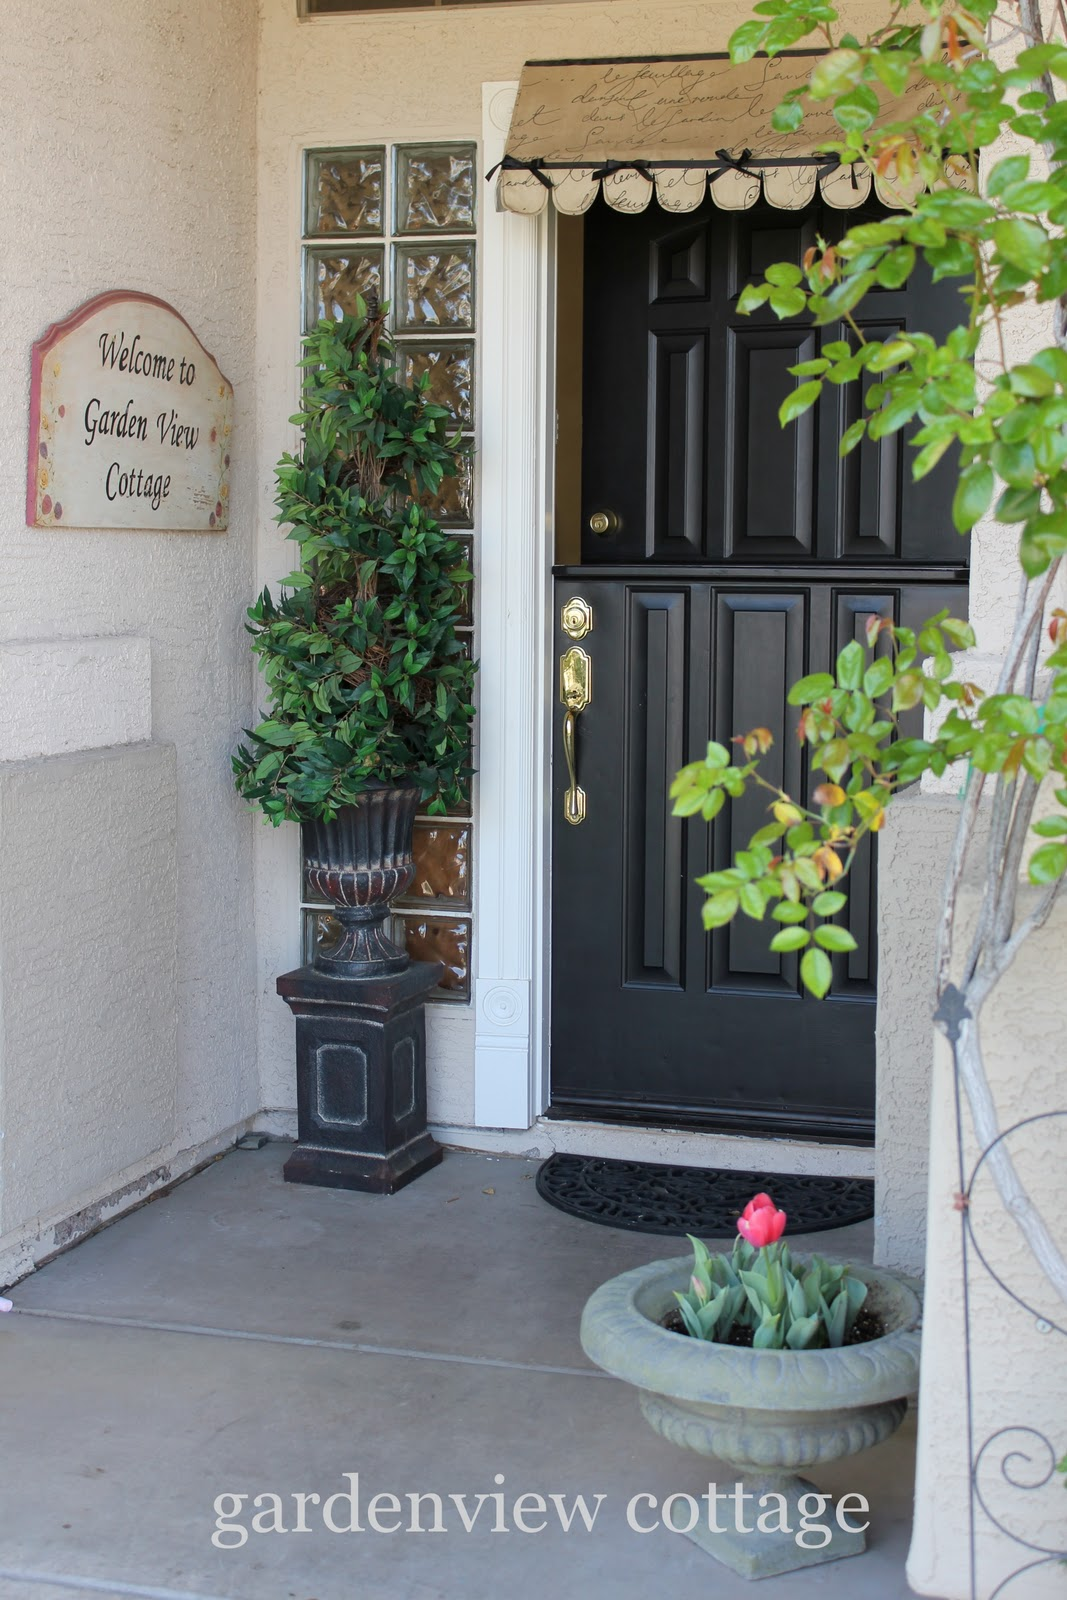 gardenview cottage: How to Make a Dutch Door